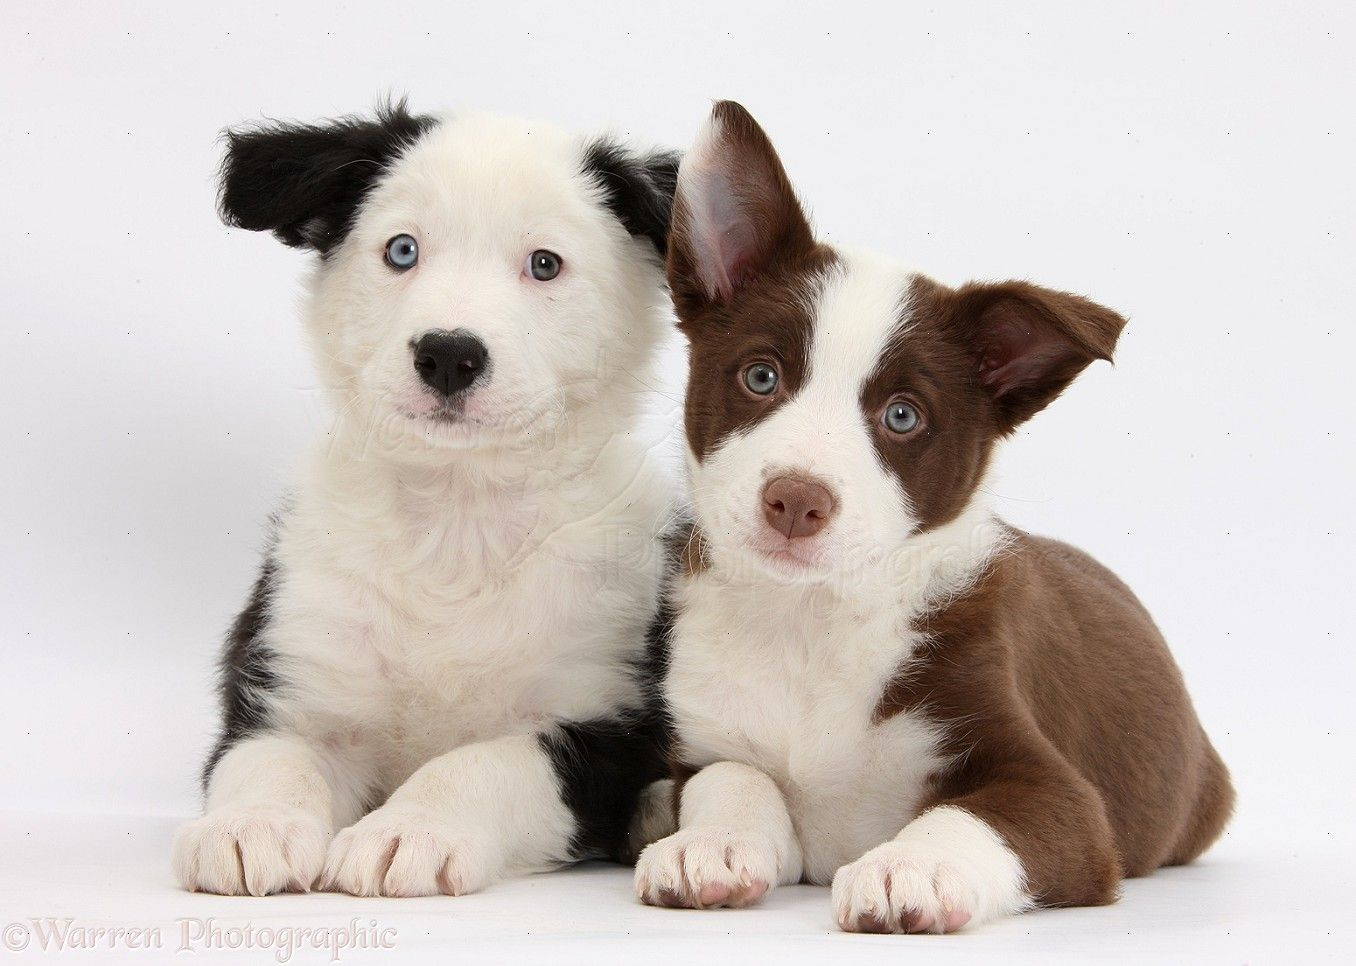 Droll Adorable Siberian Husky Puppies In 2020 Husky Puppy Dog